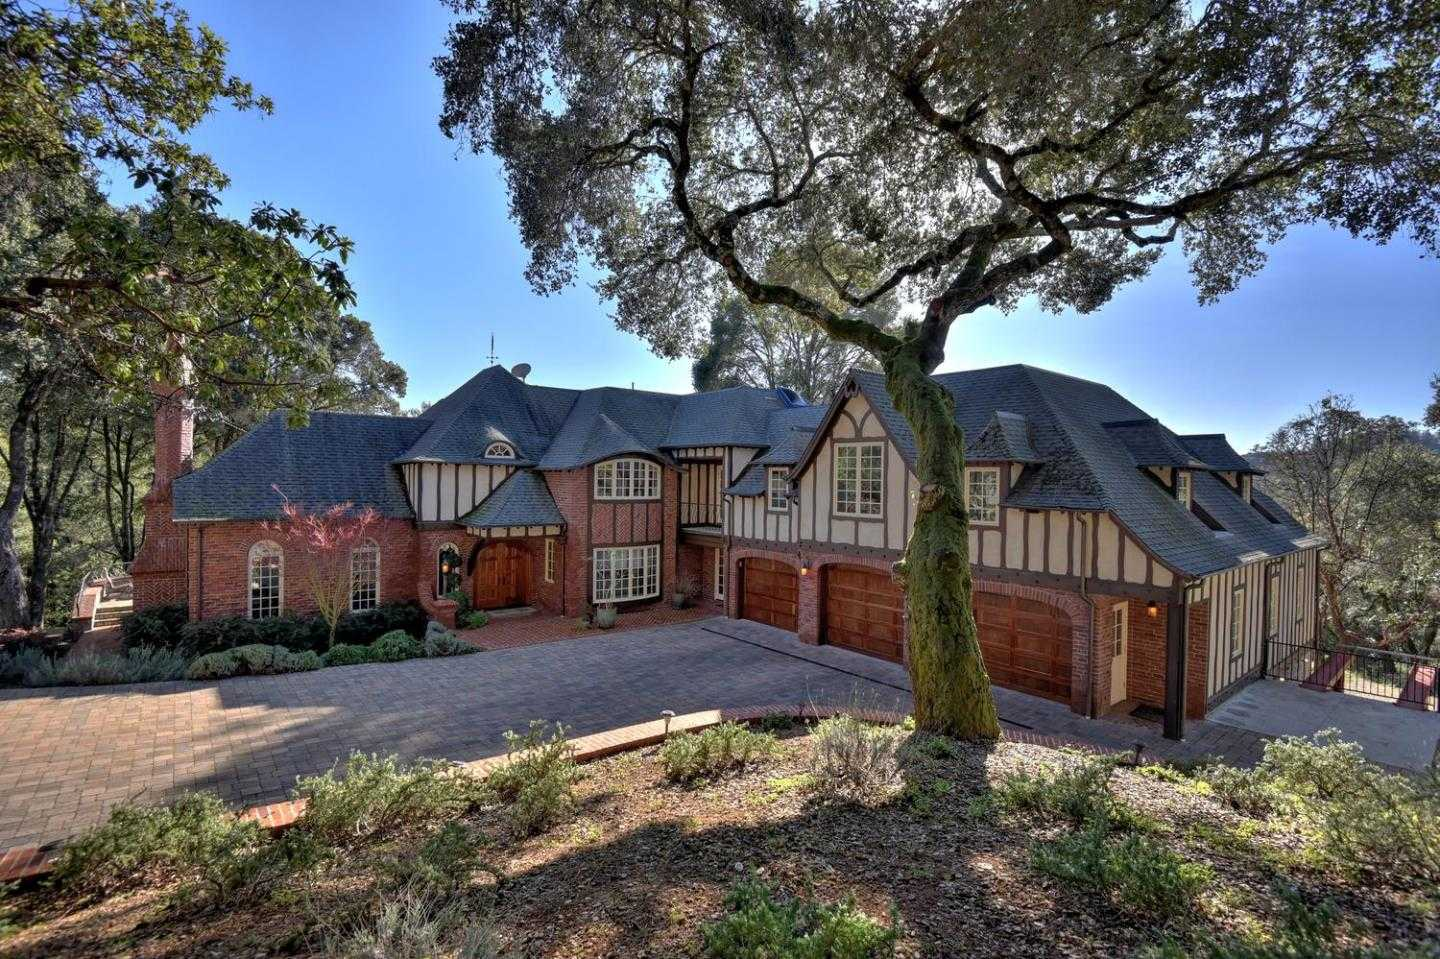 $2,795,000 - 4Br/4Ba -  for Sale in Soquel